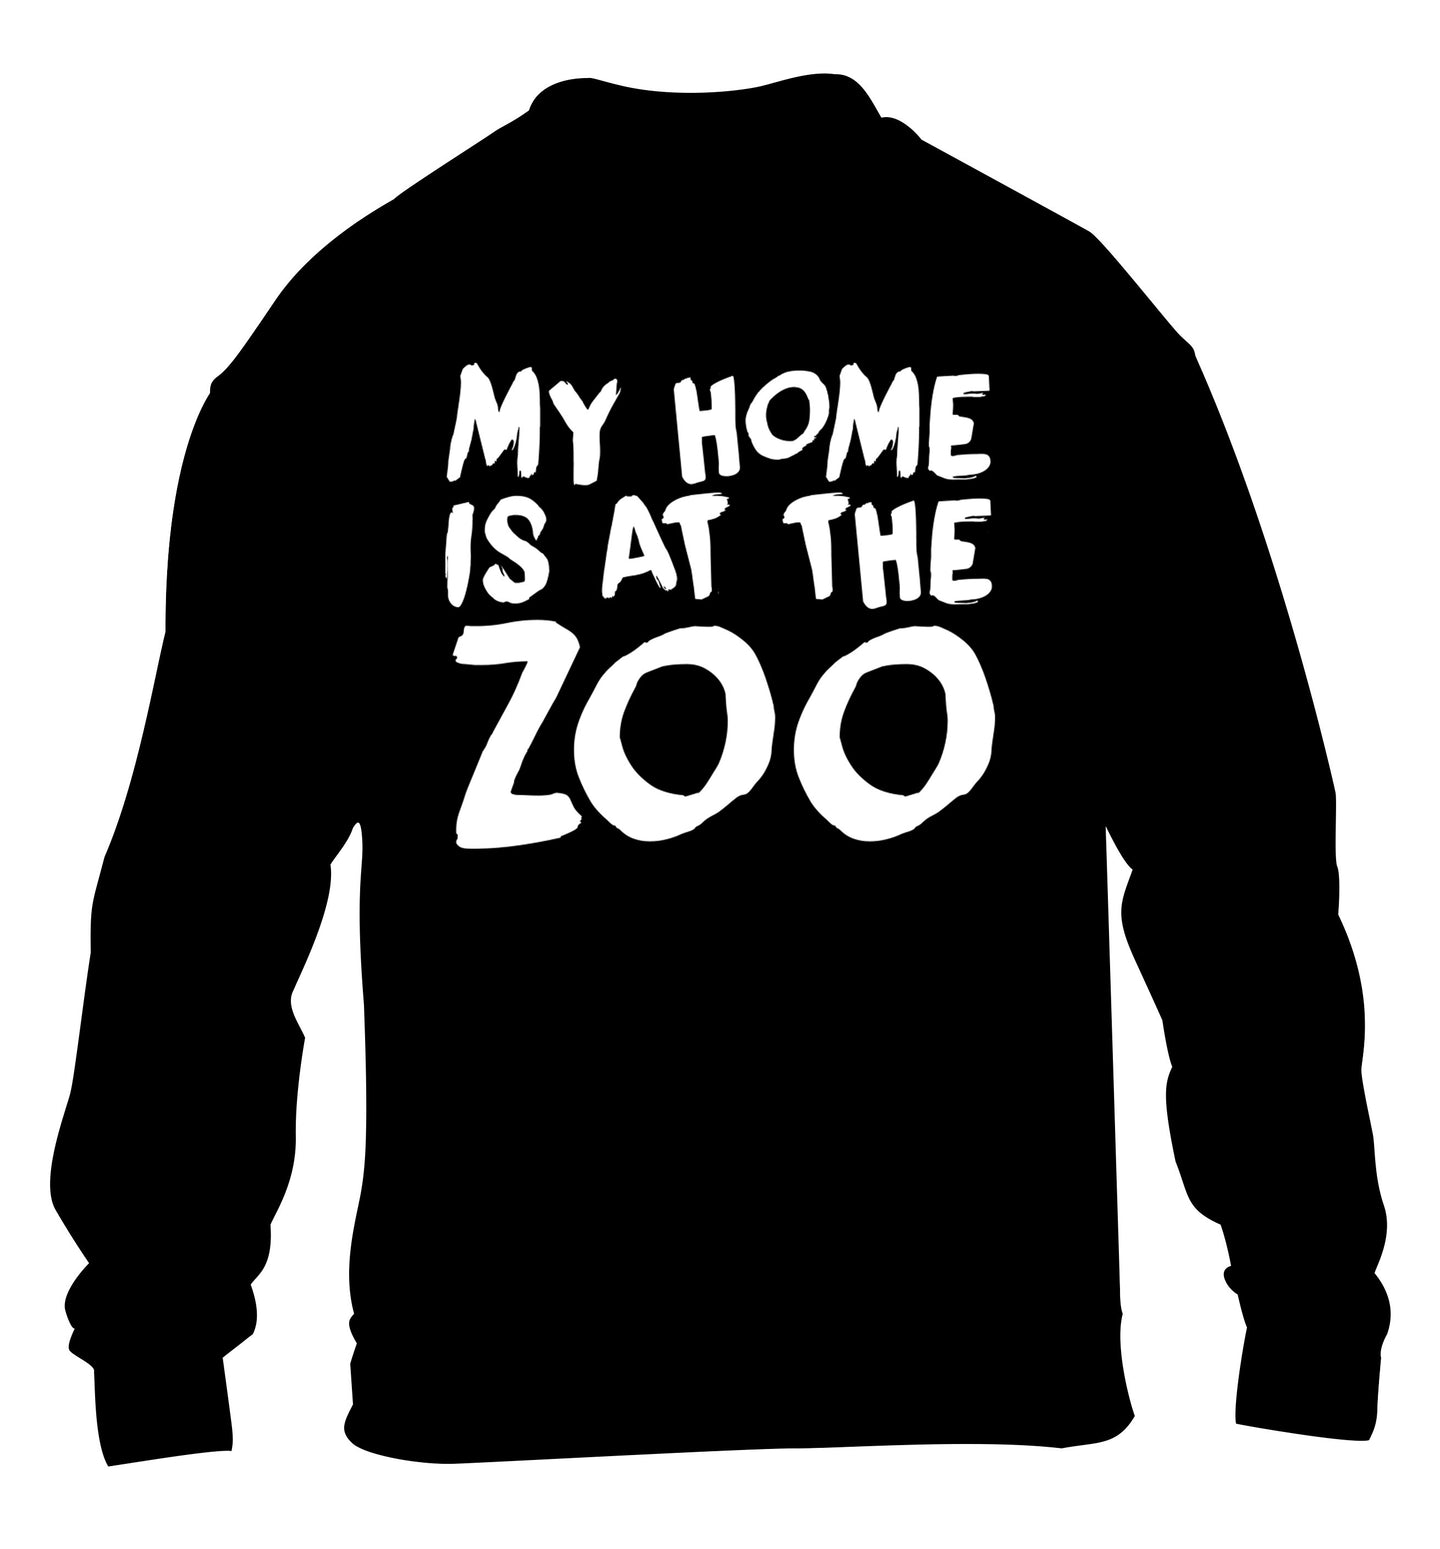 My home is at the zoo children's black sweater 12-14 Years